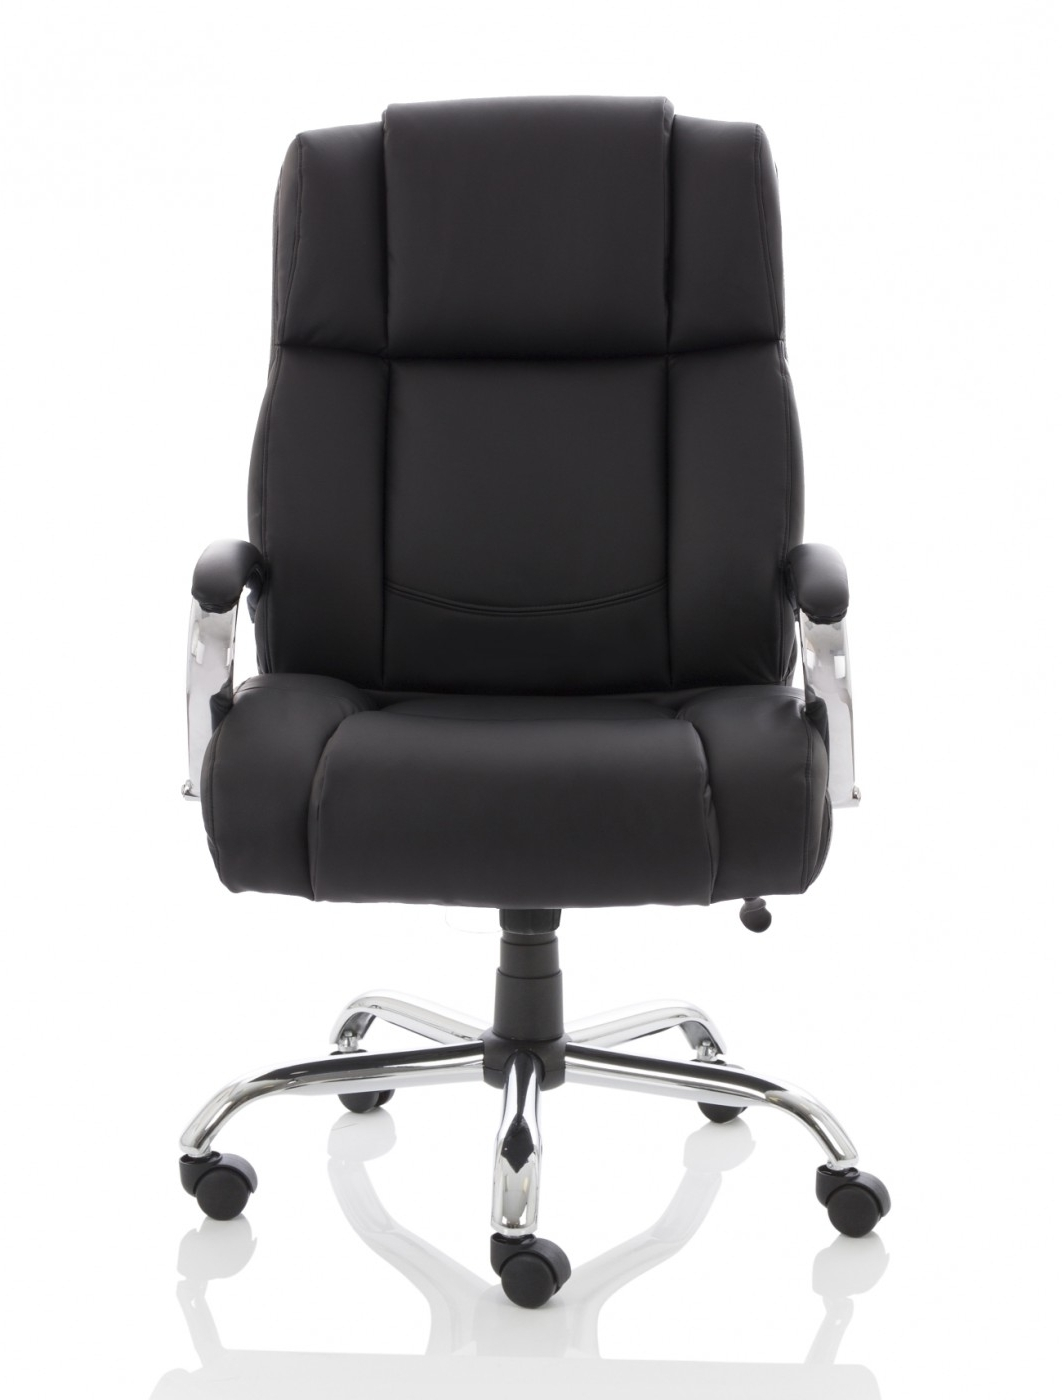 Italian Executive Office Chairs Throughout Most Up To Date Chair : High Back Executive Leather Office Chair Lumbar Support (View 11 of 20)